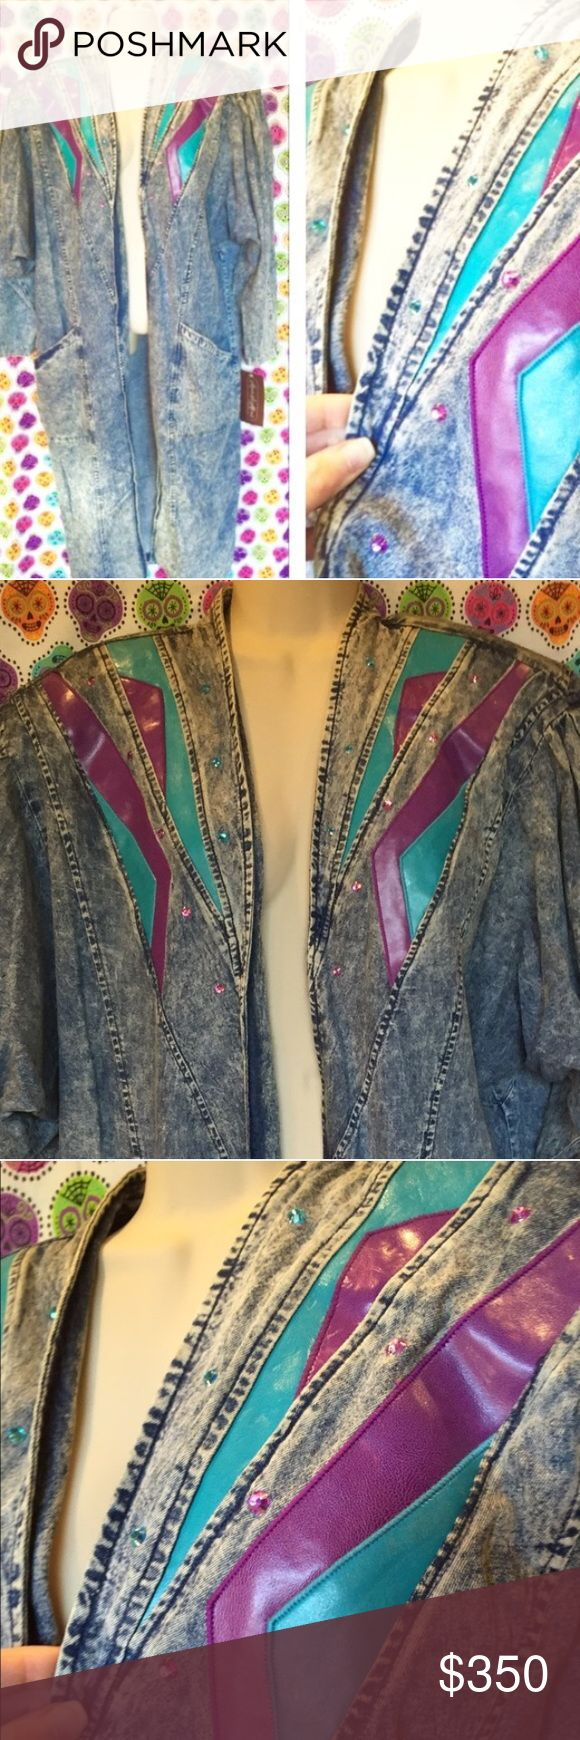 80s Vintage leather Denim jacket Jewel long duster Dolce & Gabbana all the way! Fall runway 2017 jean bedazzled glam✨⚡ New old stock 80s southwestern leather & Rhinestone trench acid washed Jacket. Massive pockets & abstract electric blue & purple leather on the front. Open front to accommodate many sizes. sz L. tags for love & lemons  wildfox widow gaultier one teaspoon goth Free people  Anthropologie  Jeffrey Campbell  Steampunk Witch Punk Betsey Johnson spell & gypsy collective UNIF Free…